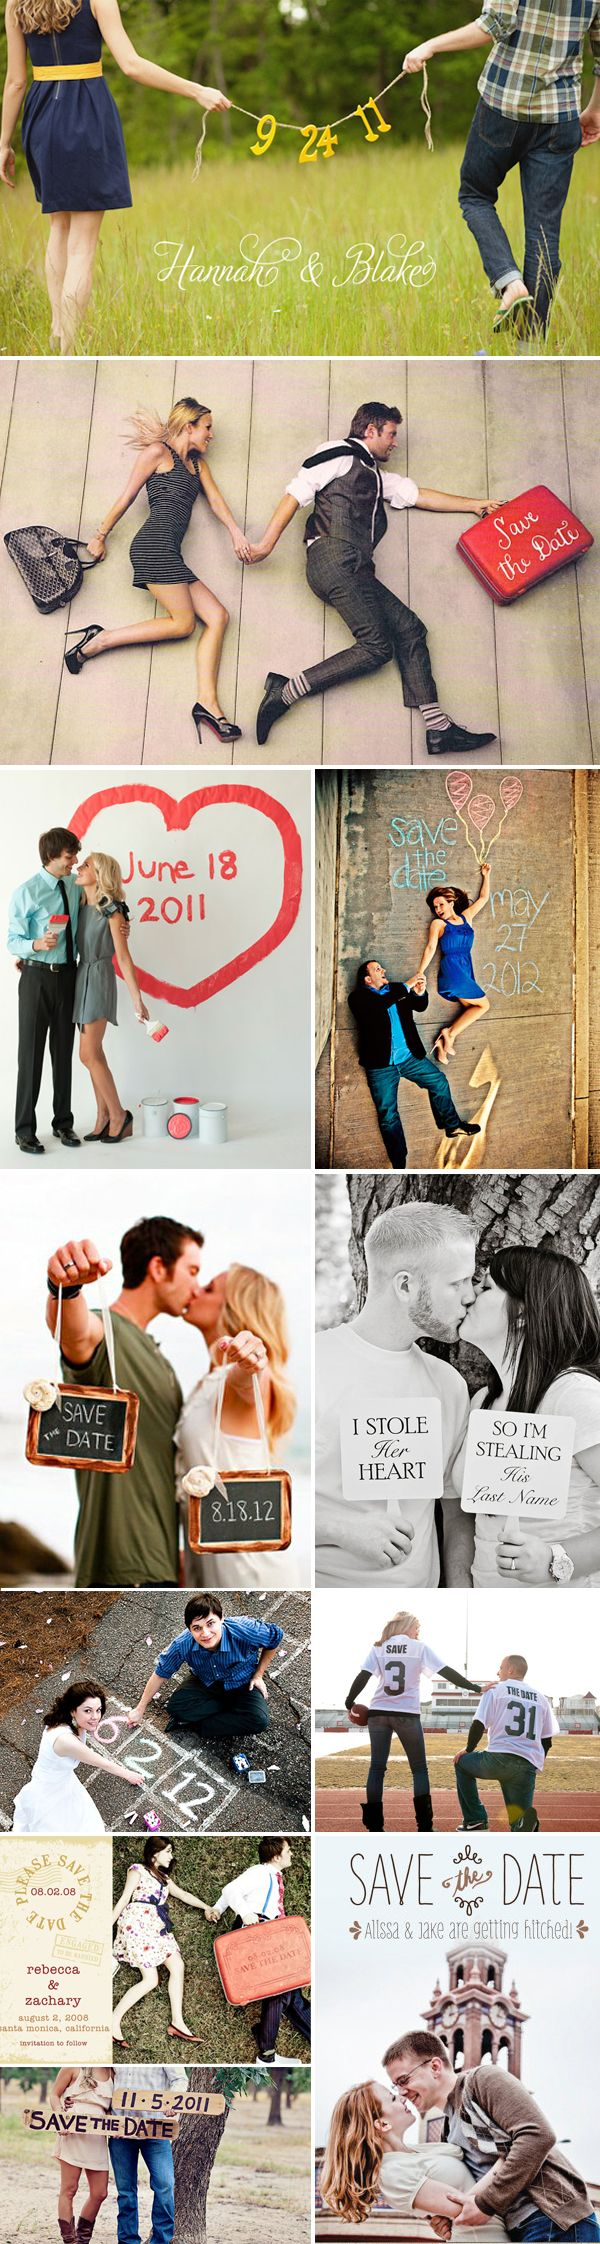 58 save the date ideas! These are cute!